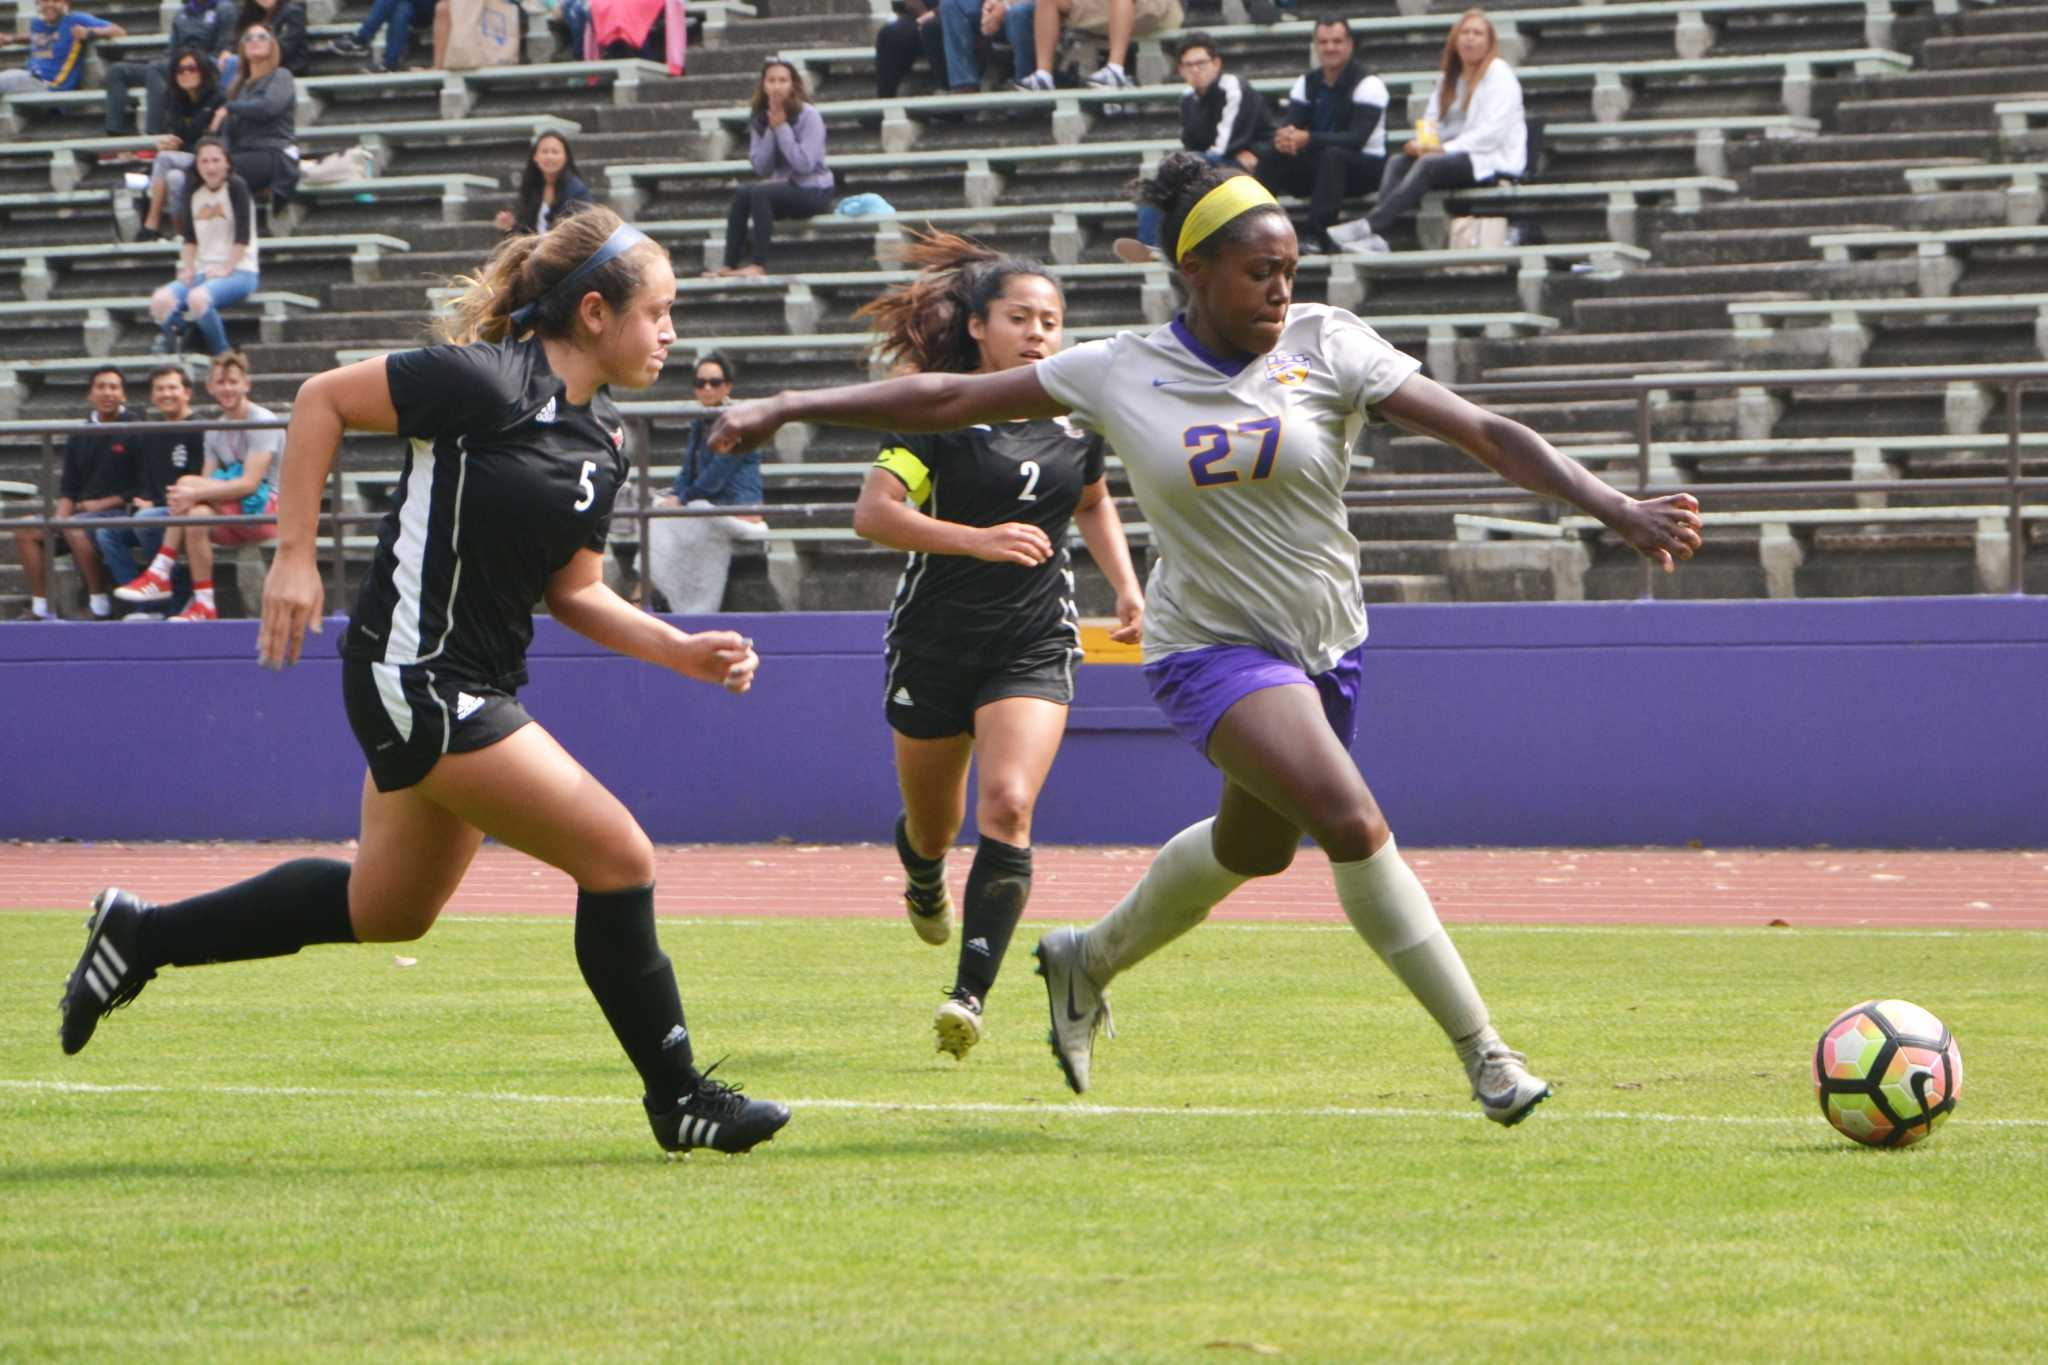 Bianca Lowe (#27) scores a goal during the first half of the women's soccer game against Holy Names University at SF State's Cox Stadium on Saturday, September 16, 2017. (Golden Gate Xpress/Cristabell Fierros)